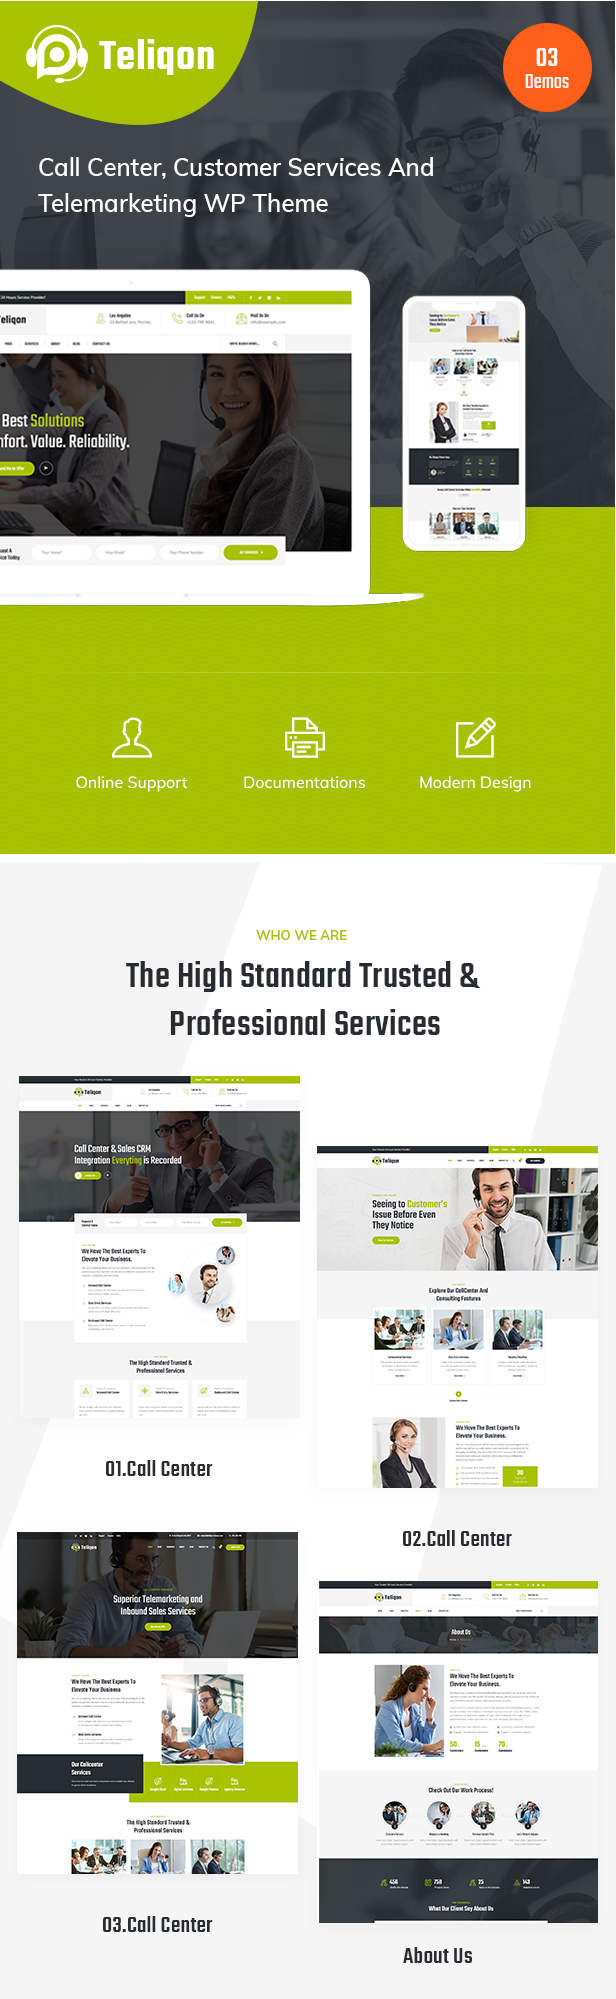 Teliqon Call Center and Telemarketing WordPress Theme